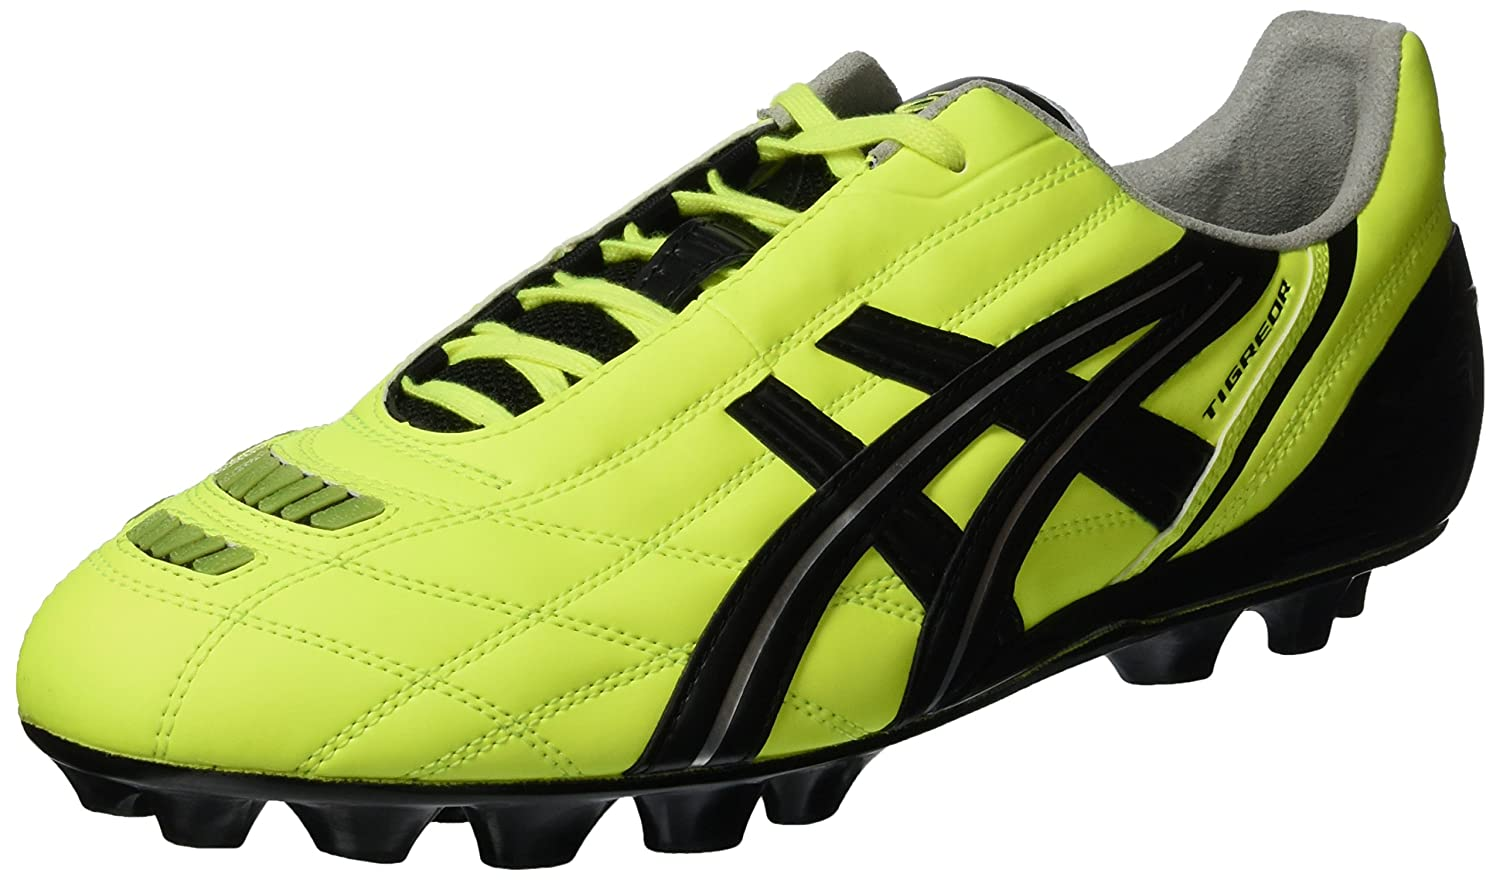 ASICS Tigreor It (Flash Yellow schwarz Silver) Cod. PY408 9454